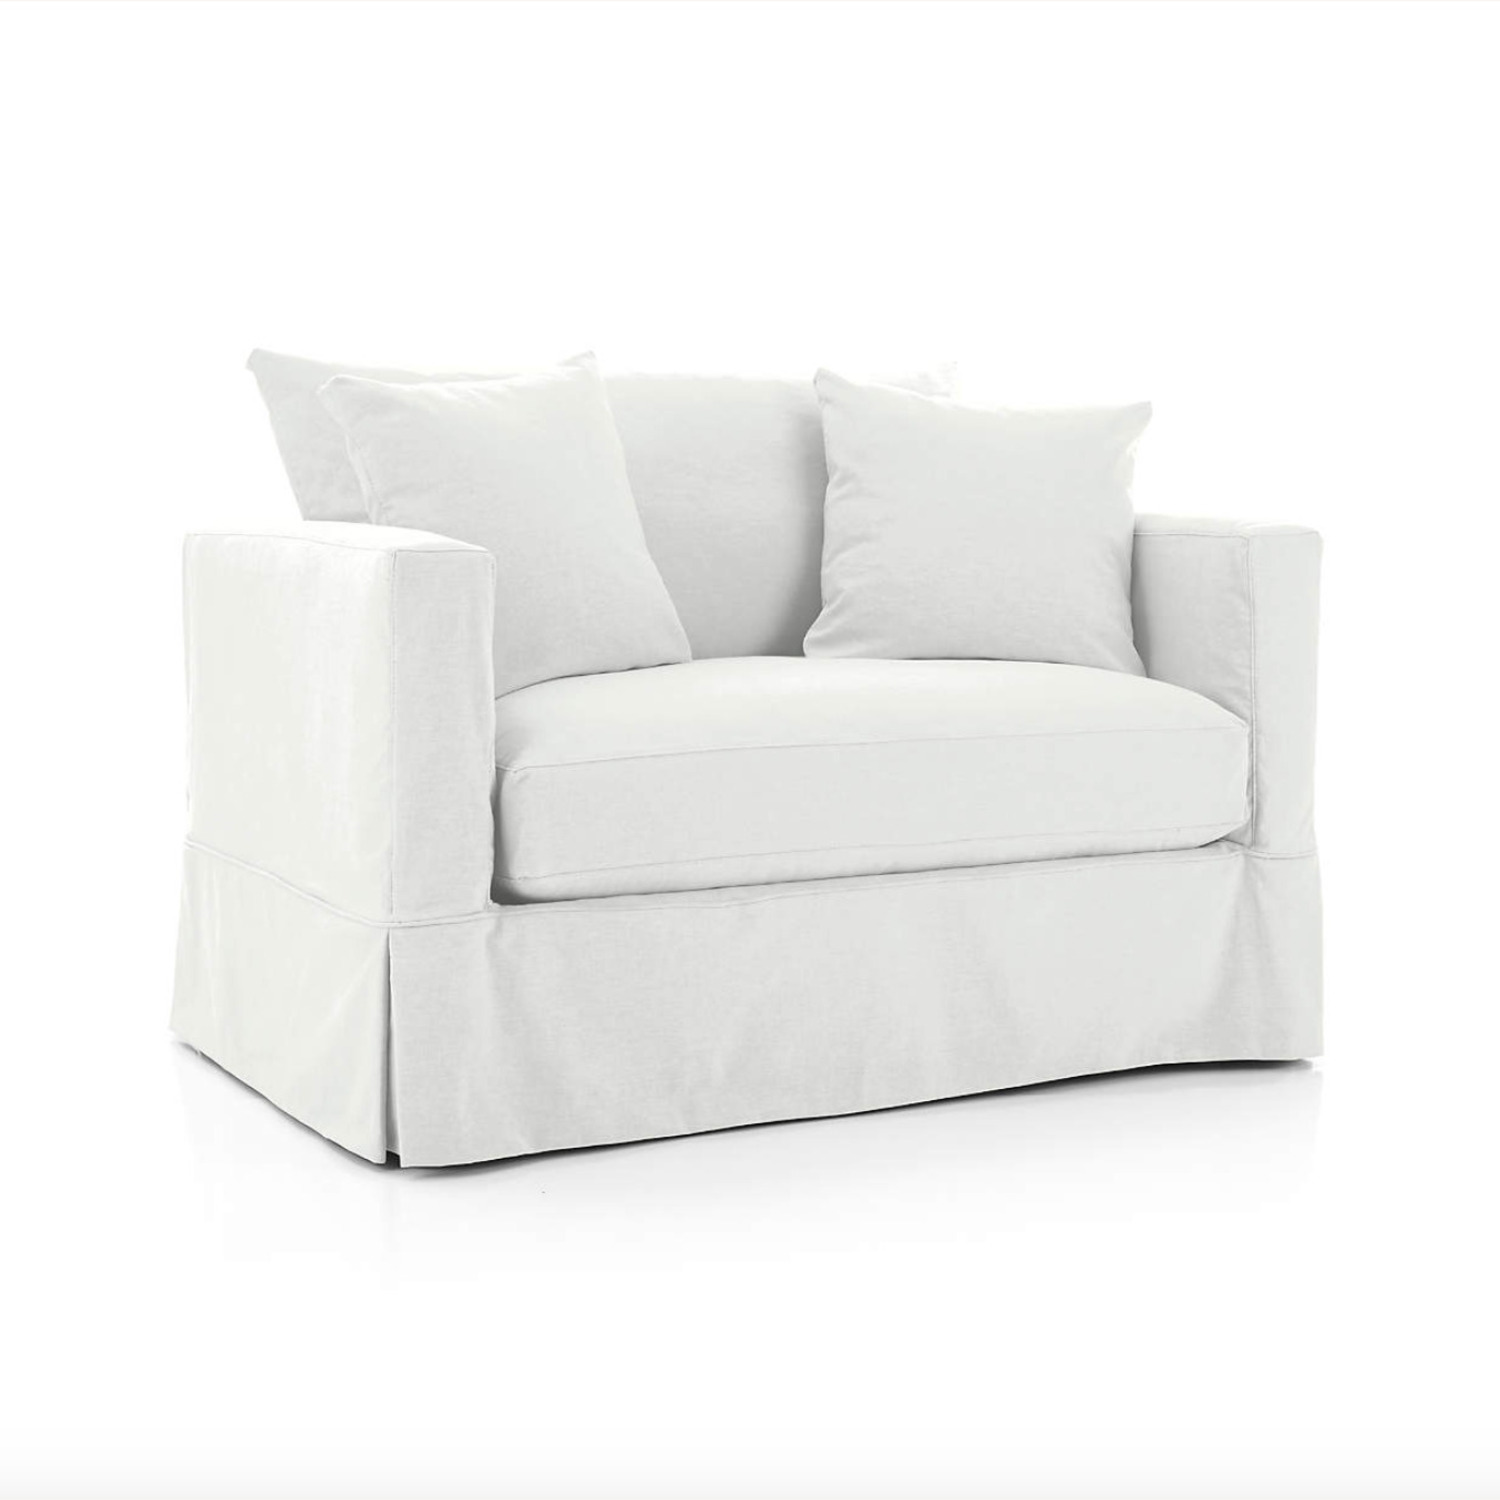 Crate & Barrel Willow Modern Slipcovered Twin Sleeper Sofa - image-4